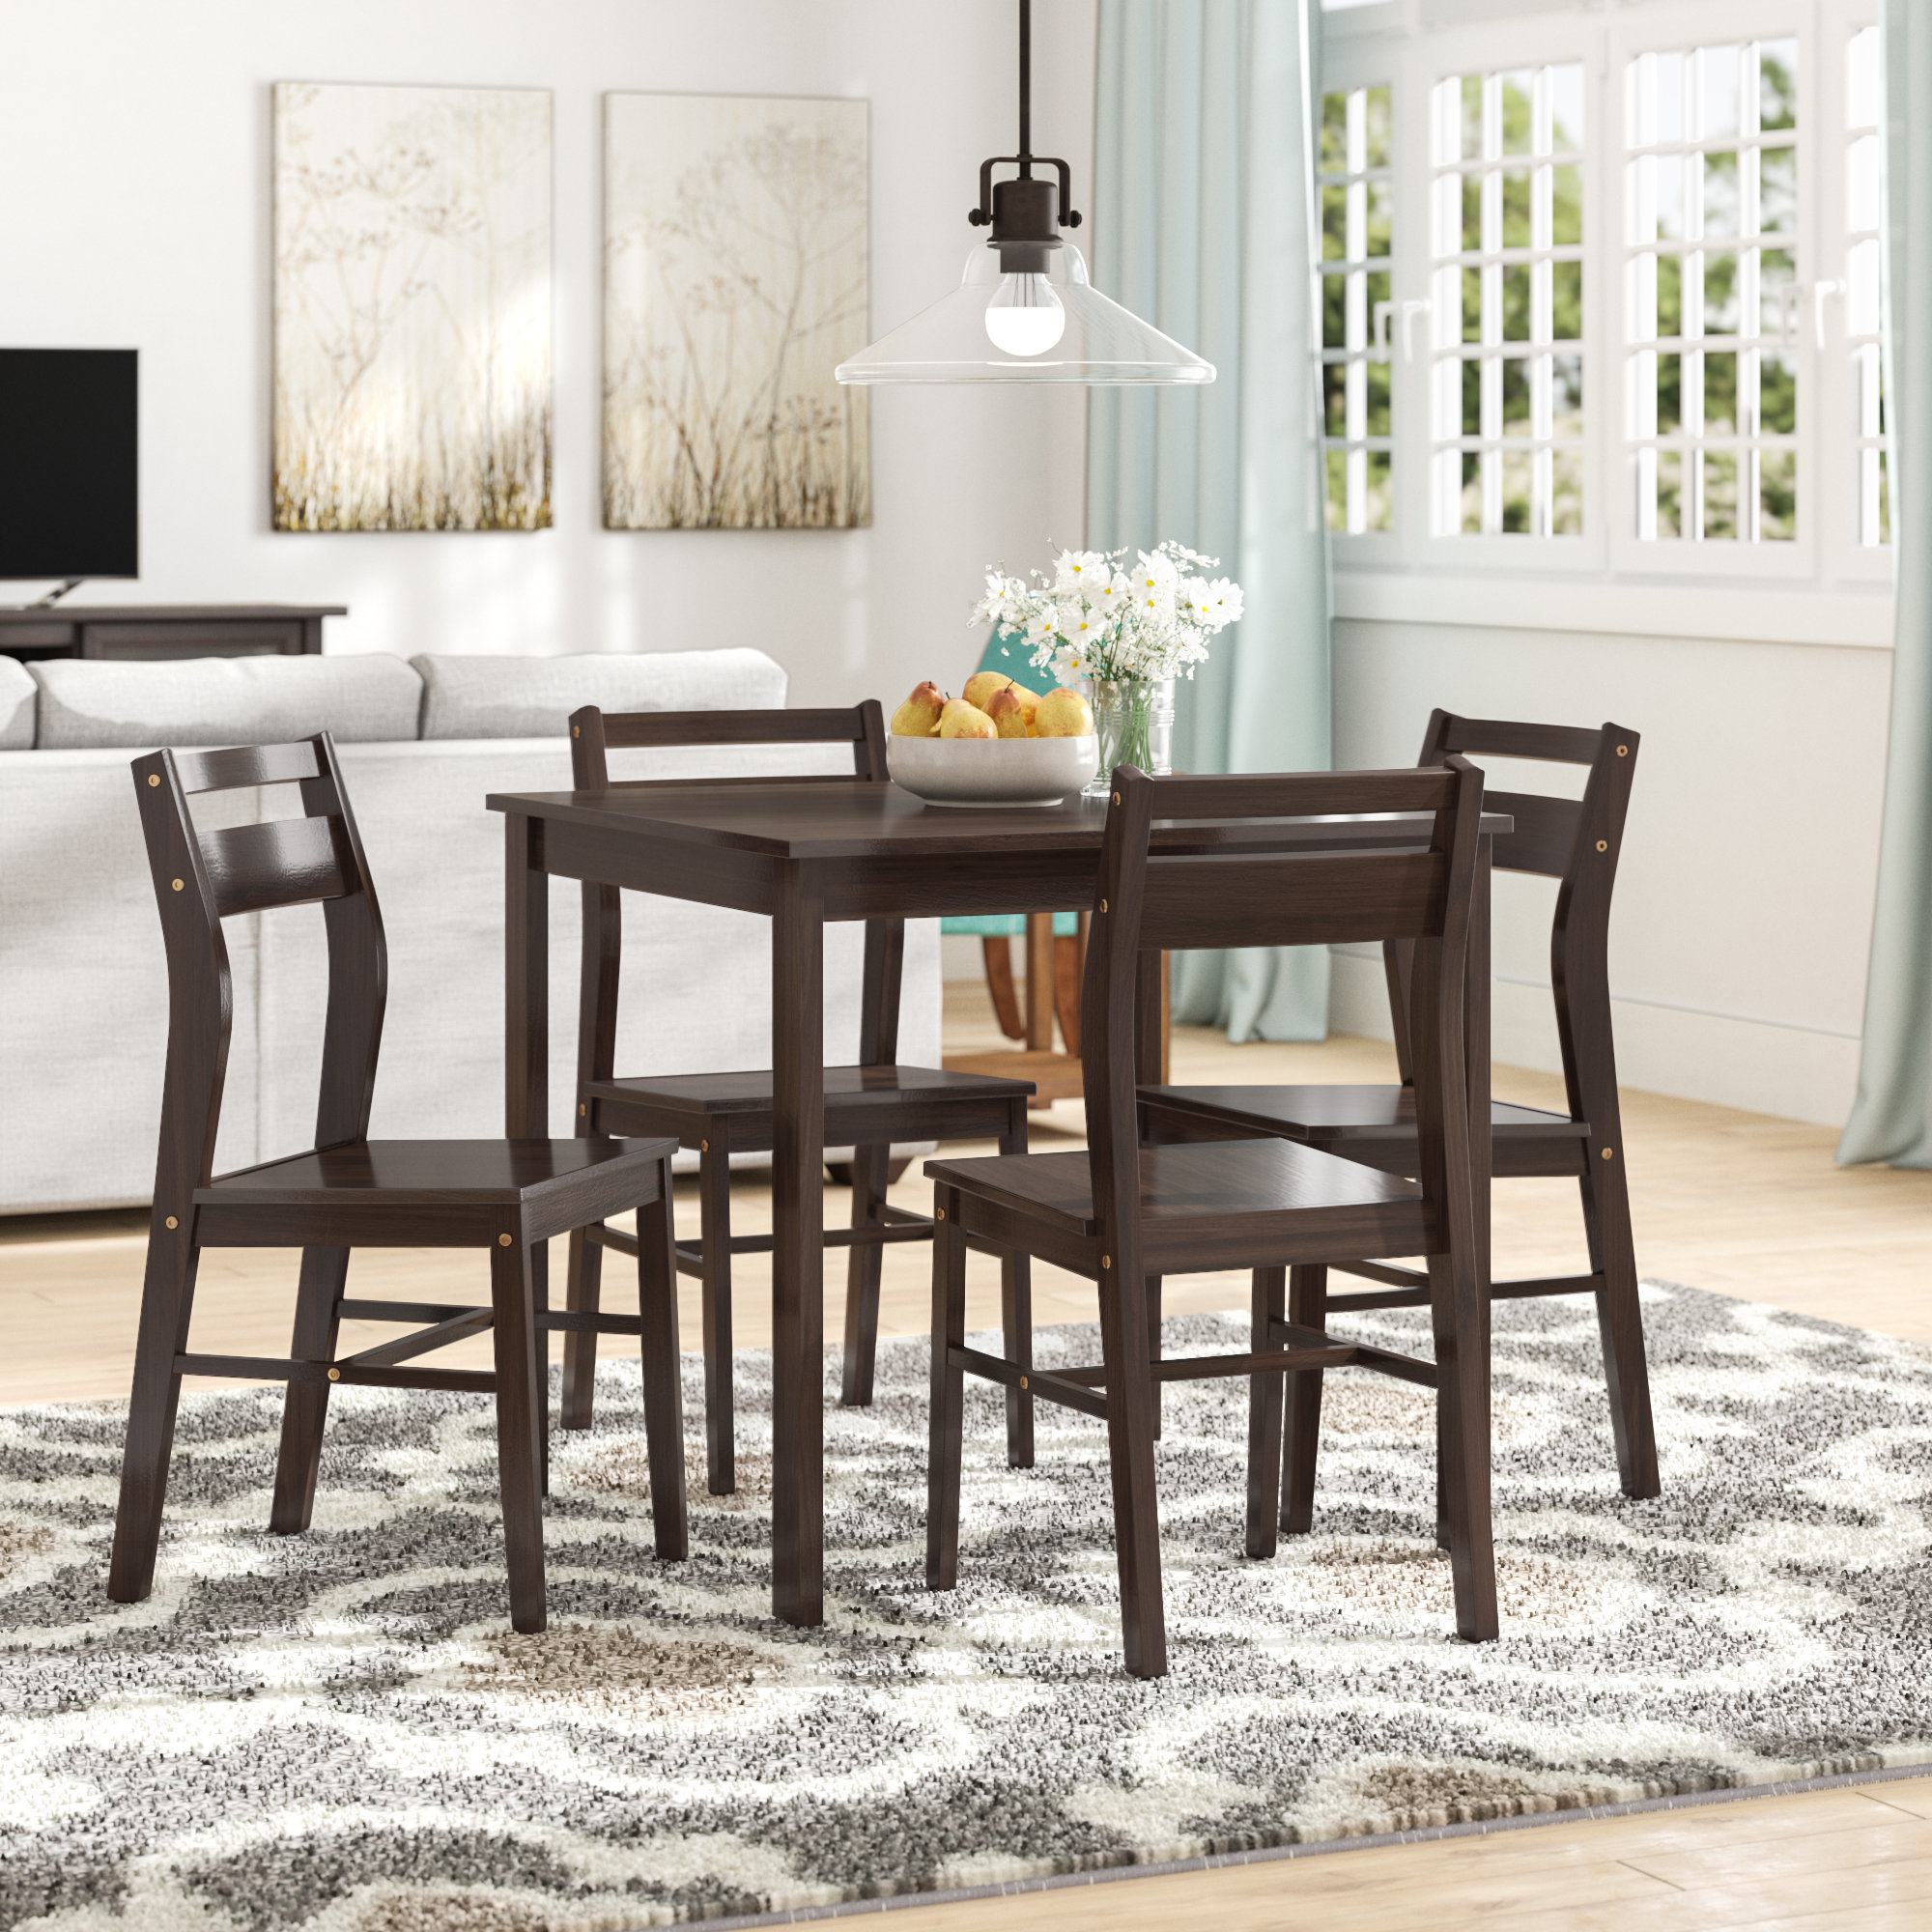 Wayfair Throughout Favorite Weatherholt Dining Tables (View 19 of 25)